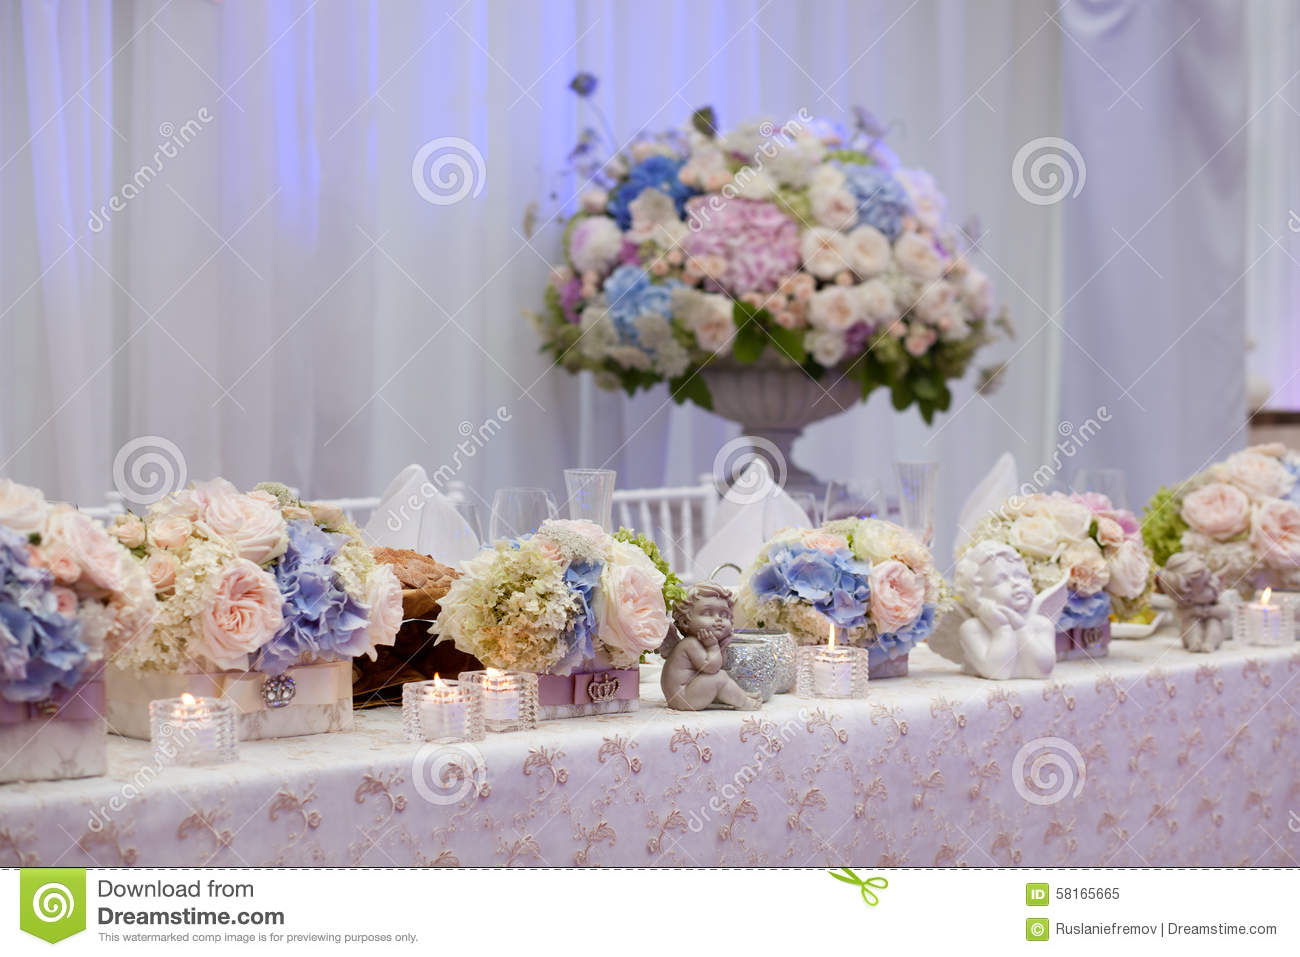 Wedding table setting decorated in the restaurant.